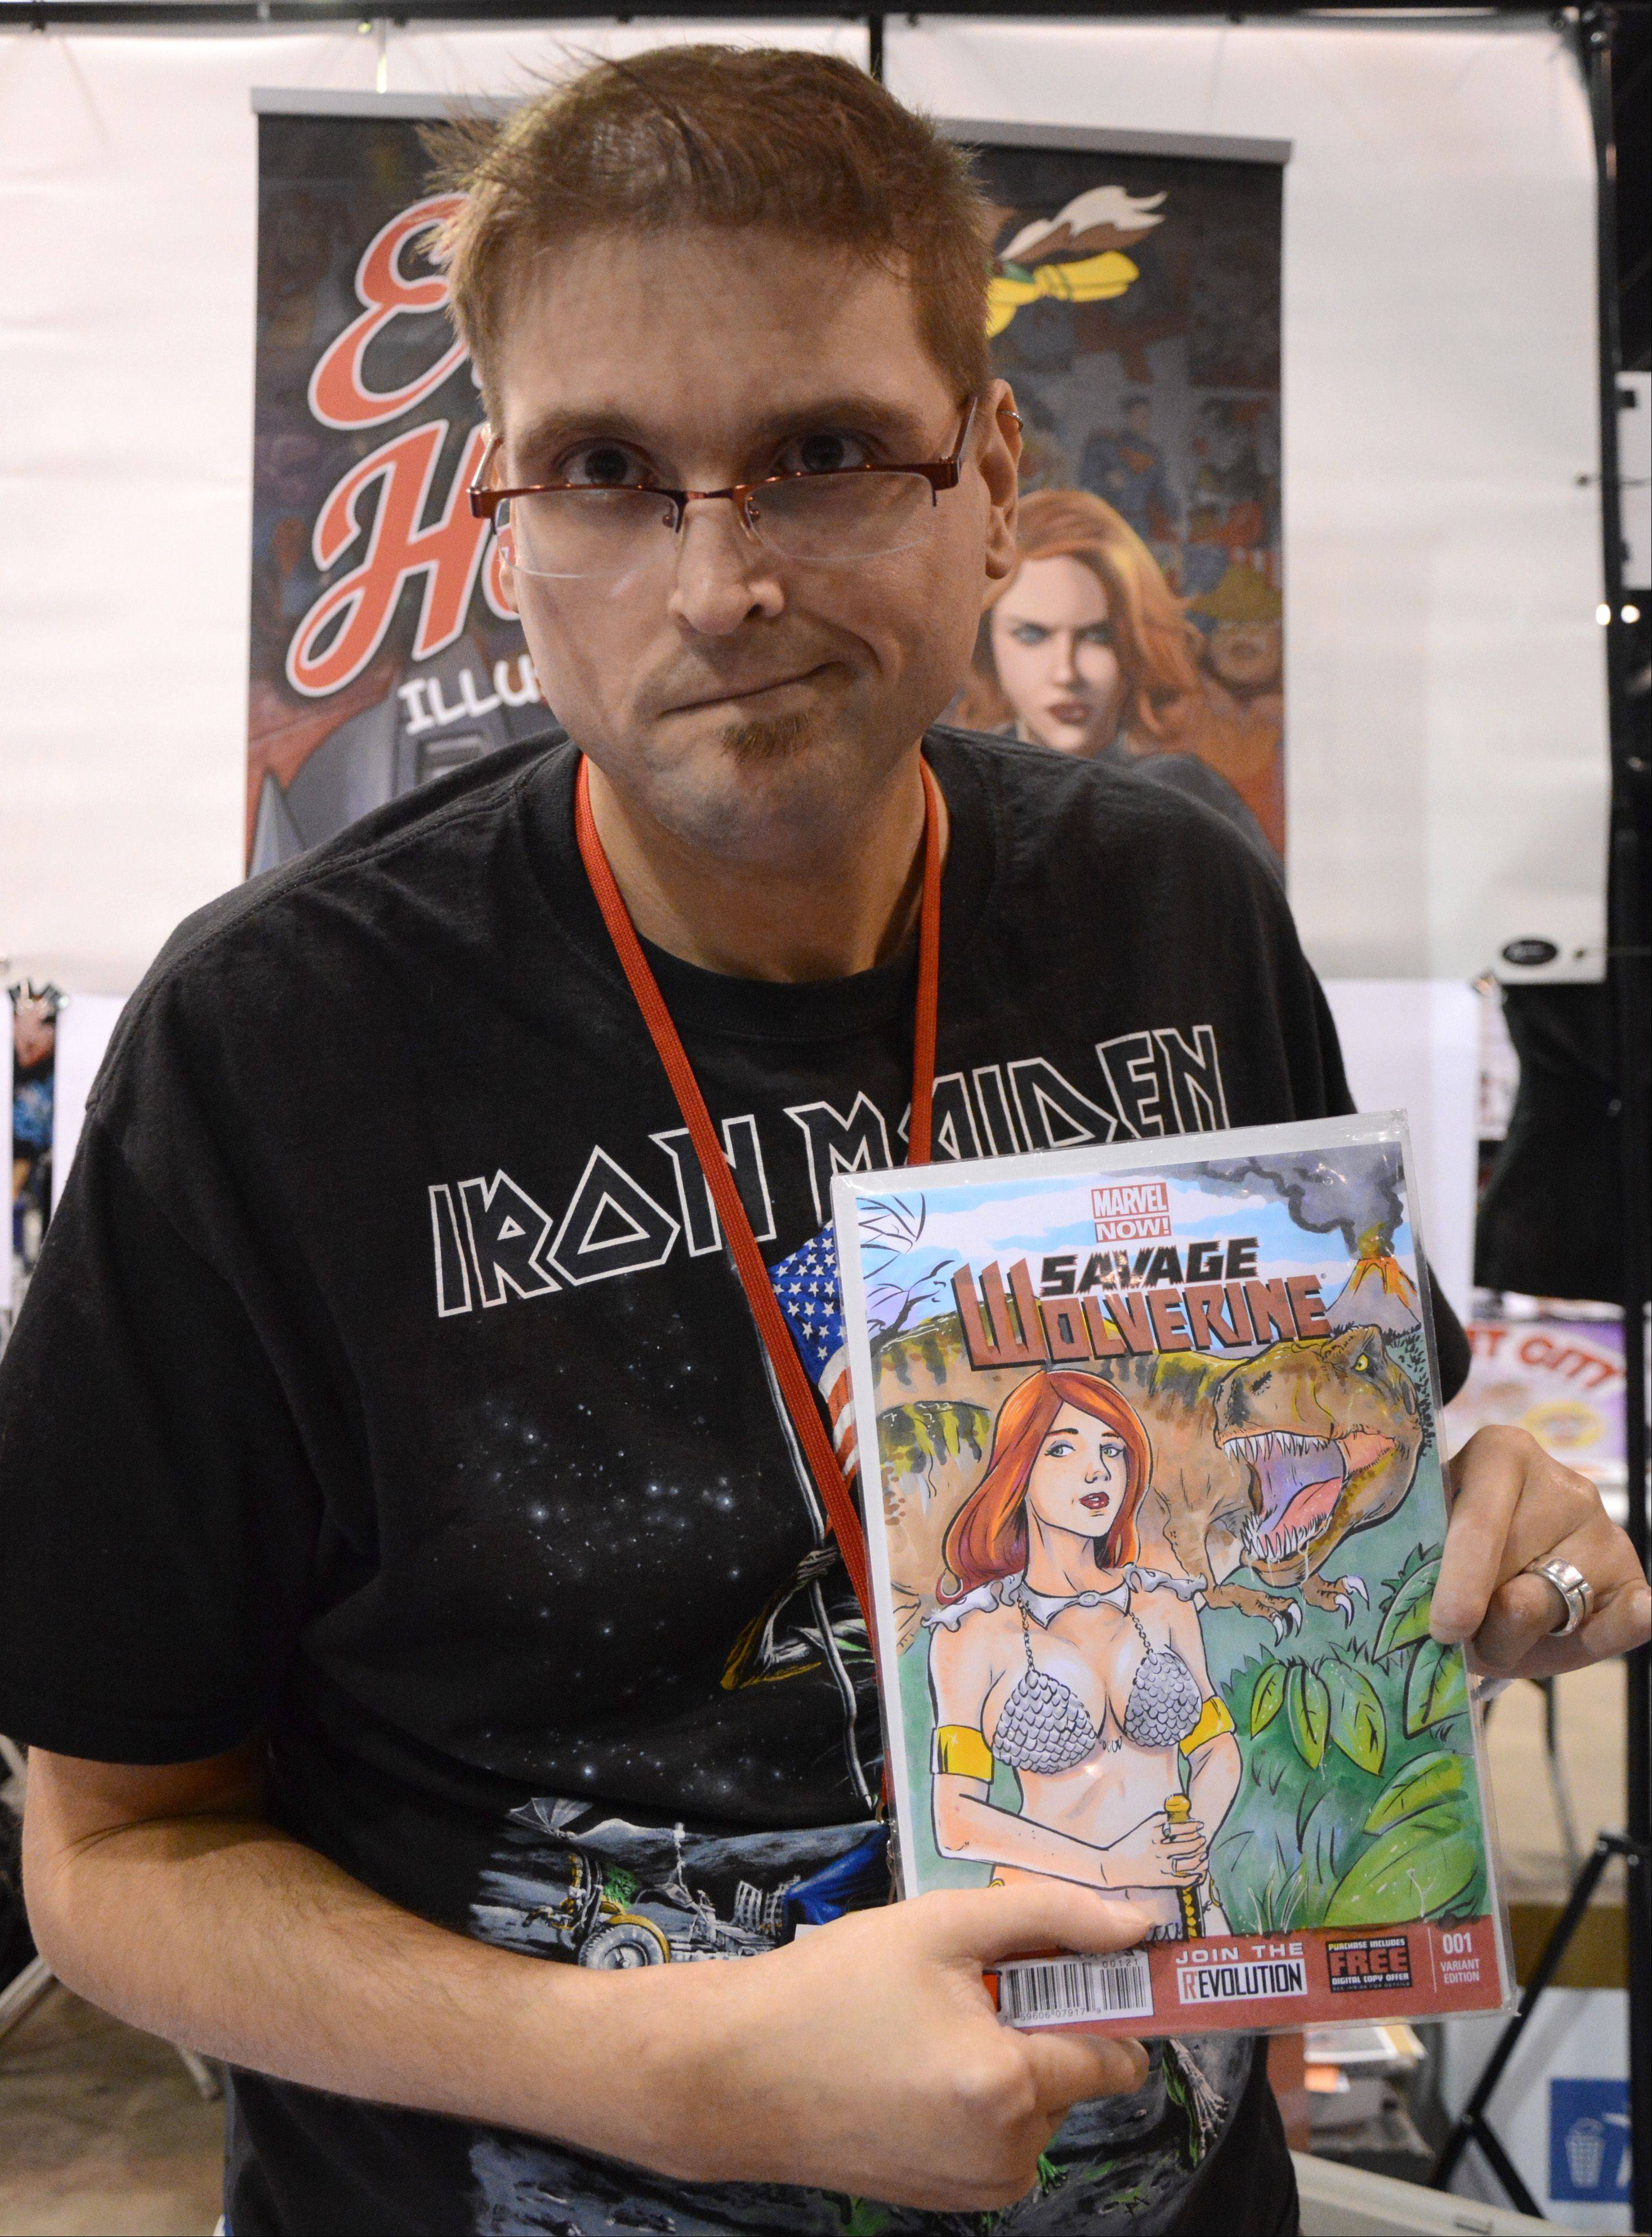 Erik Hodson, of Detroit, poses with some of his artwork at Chicago Comic Con. Hodson was diagnosed with scleroderma, a connective tissue disease that has affected his hands, but he has since retrained himself so he can continue to draw.